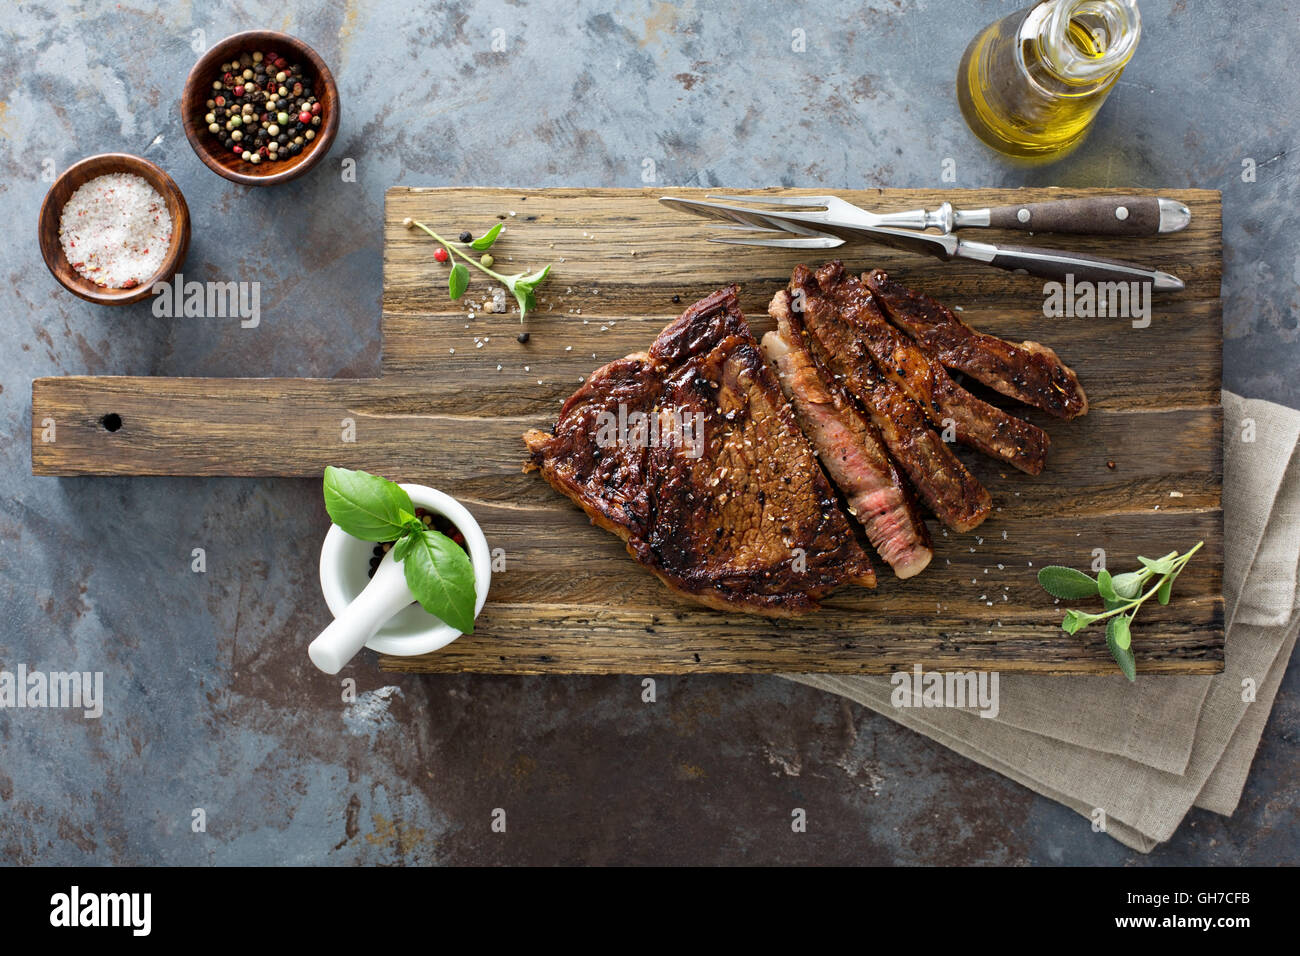 Ribeye steak on a cutting board top view - Stock Image